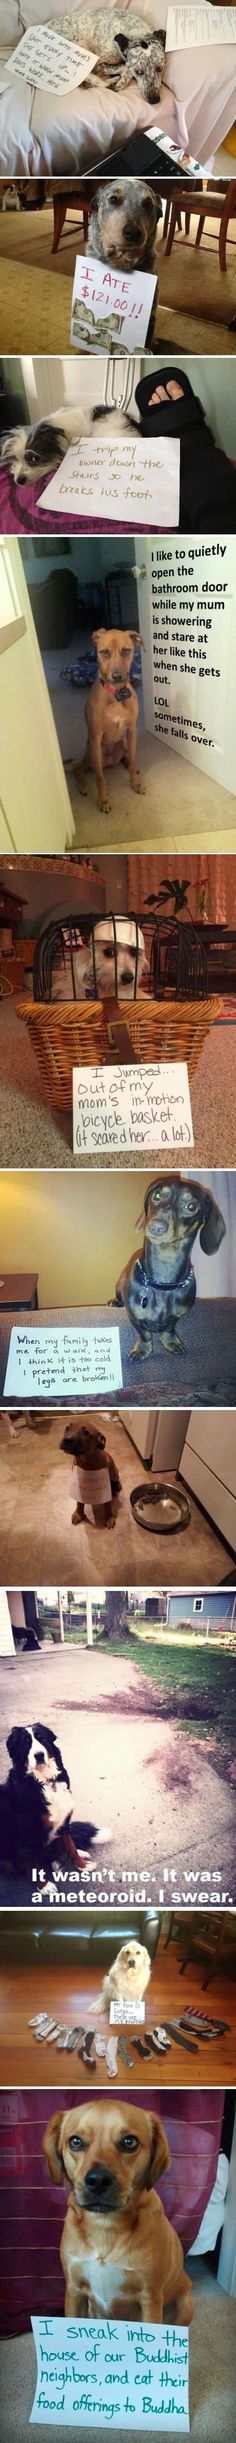 Funny Dog Shaming - notice how you never see any cat shaming. This is clearly bc they're not as dumb as dogs.>>>>actually I have seen cat shaming Funny Animal Pictures, Cute Funny Animals, Funny Cute, Funny Dogs, Funny Humor, Super Funny, Hilarious Pictures, Silly Dogs, Funny Photos